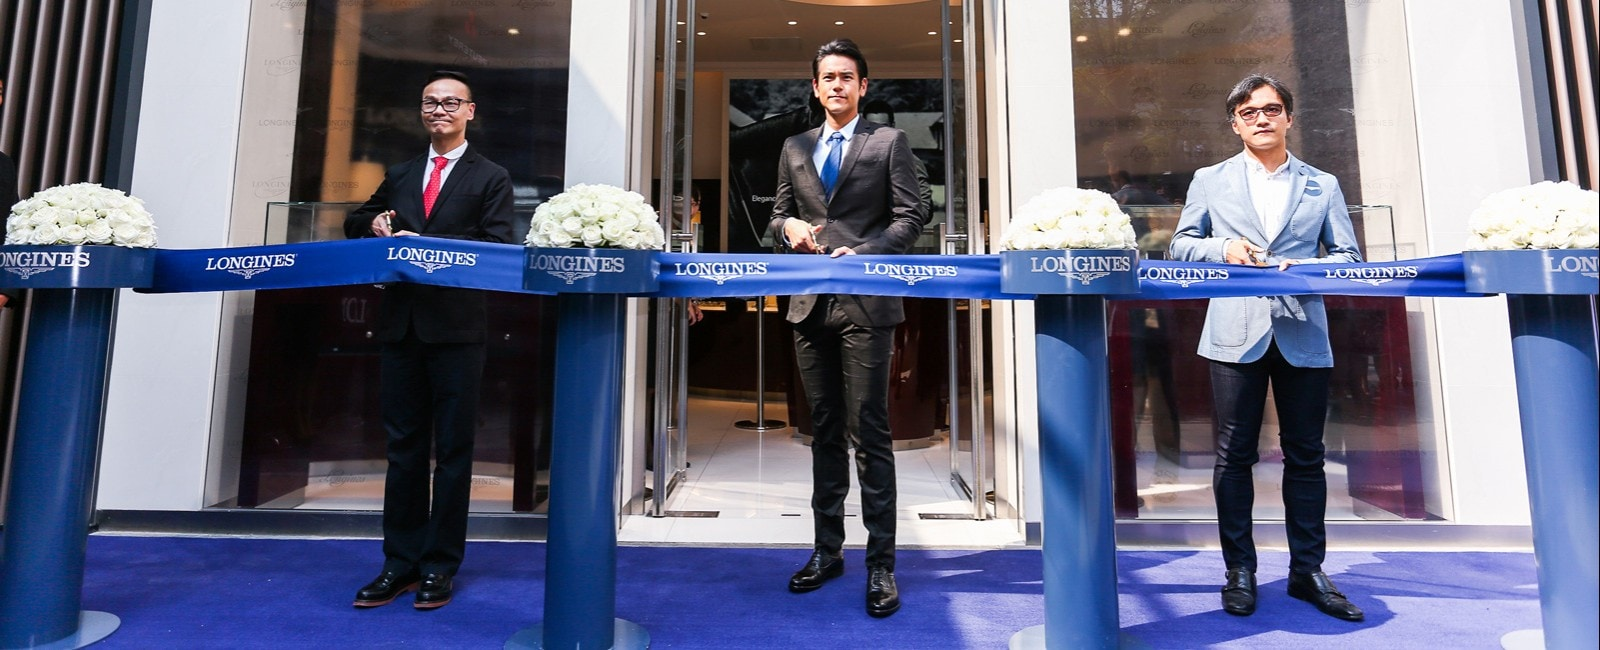 Longines officially inaugurates the Taikoo Li Chengdu Corporate Store in presence of Ambassador of Elegance Eddie Peng